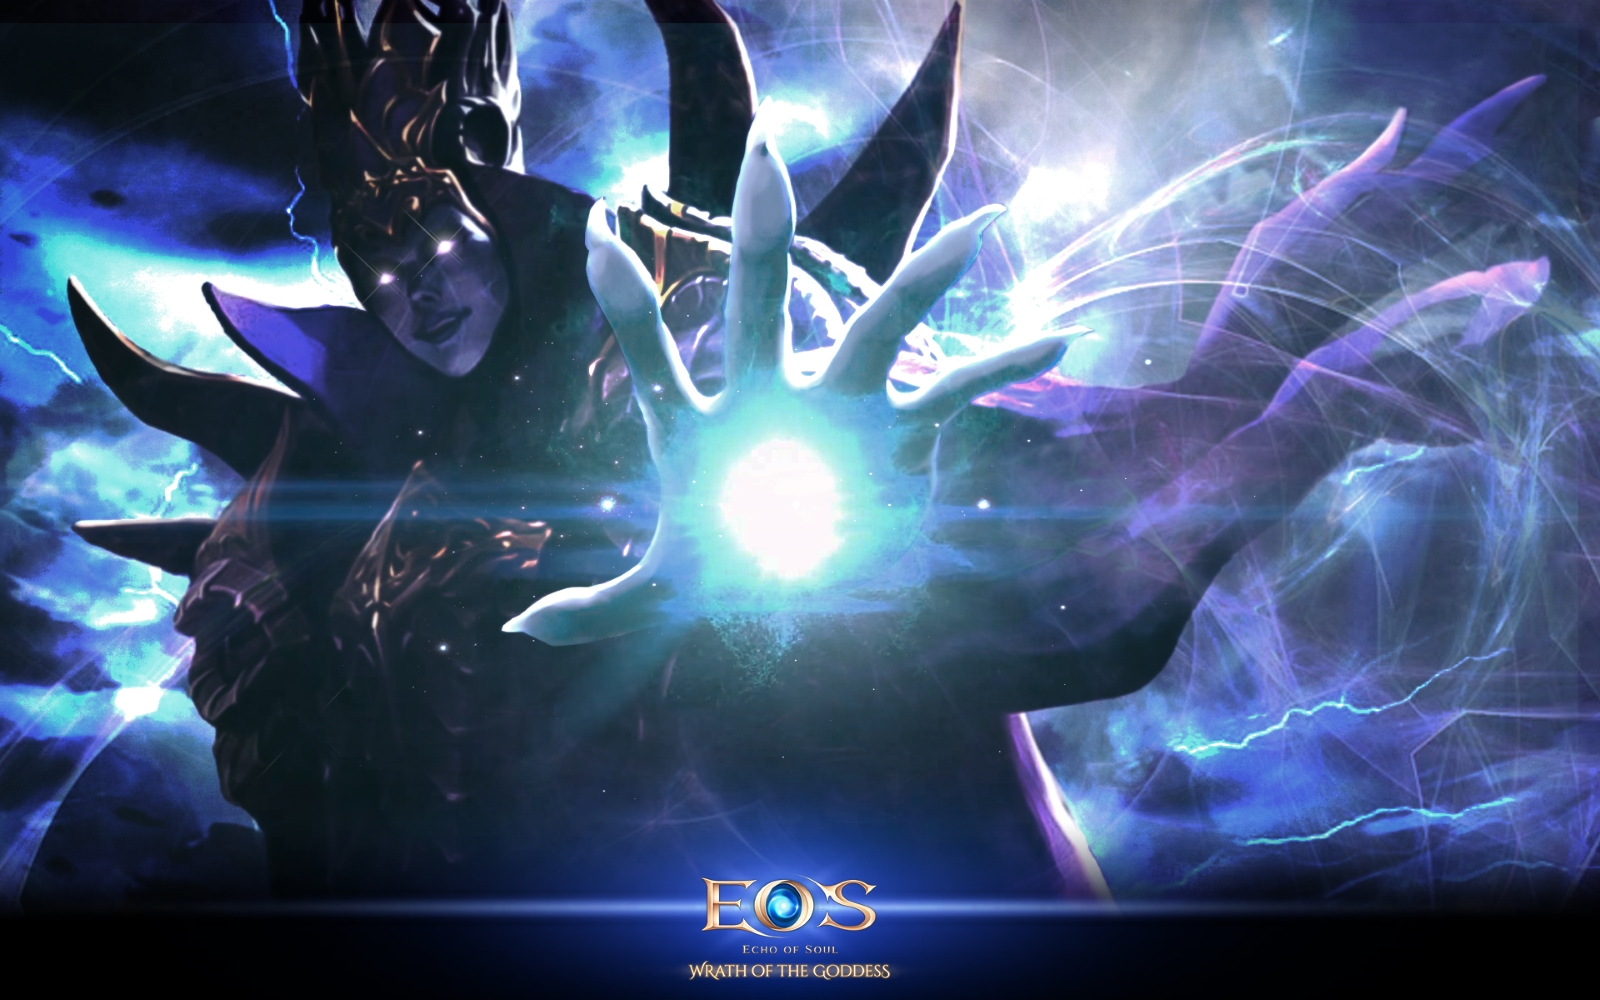 Echo of Soul: Wrath of the Goddess Expansion Launched